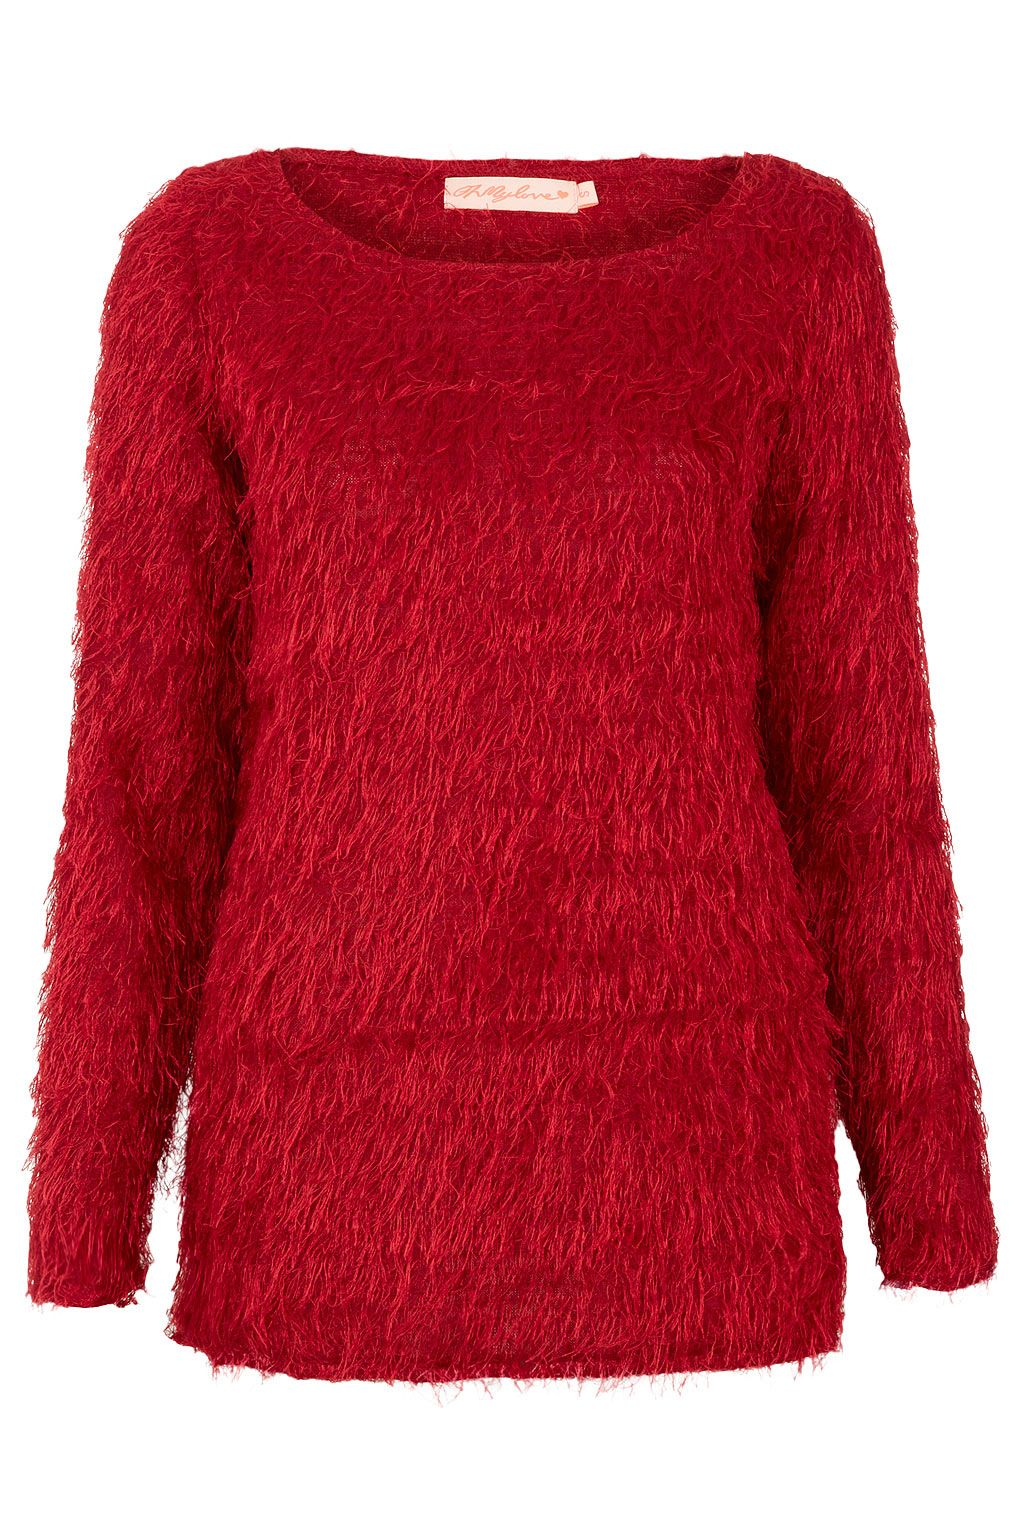 Red Pullover   Oh My Love   Topshop   clothing   Pinterest ...